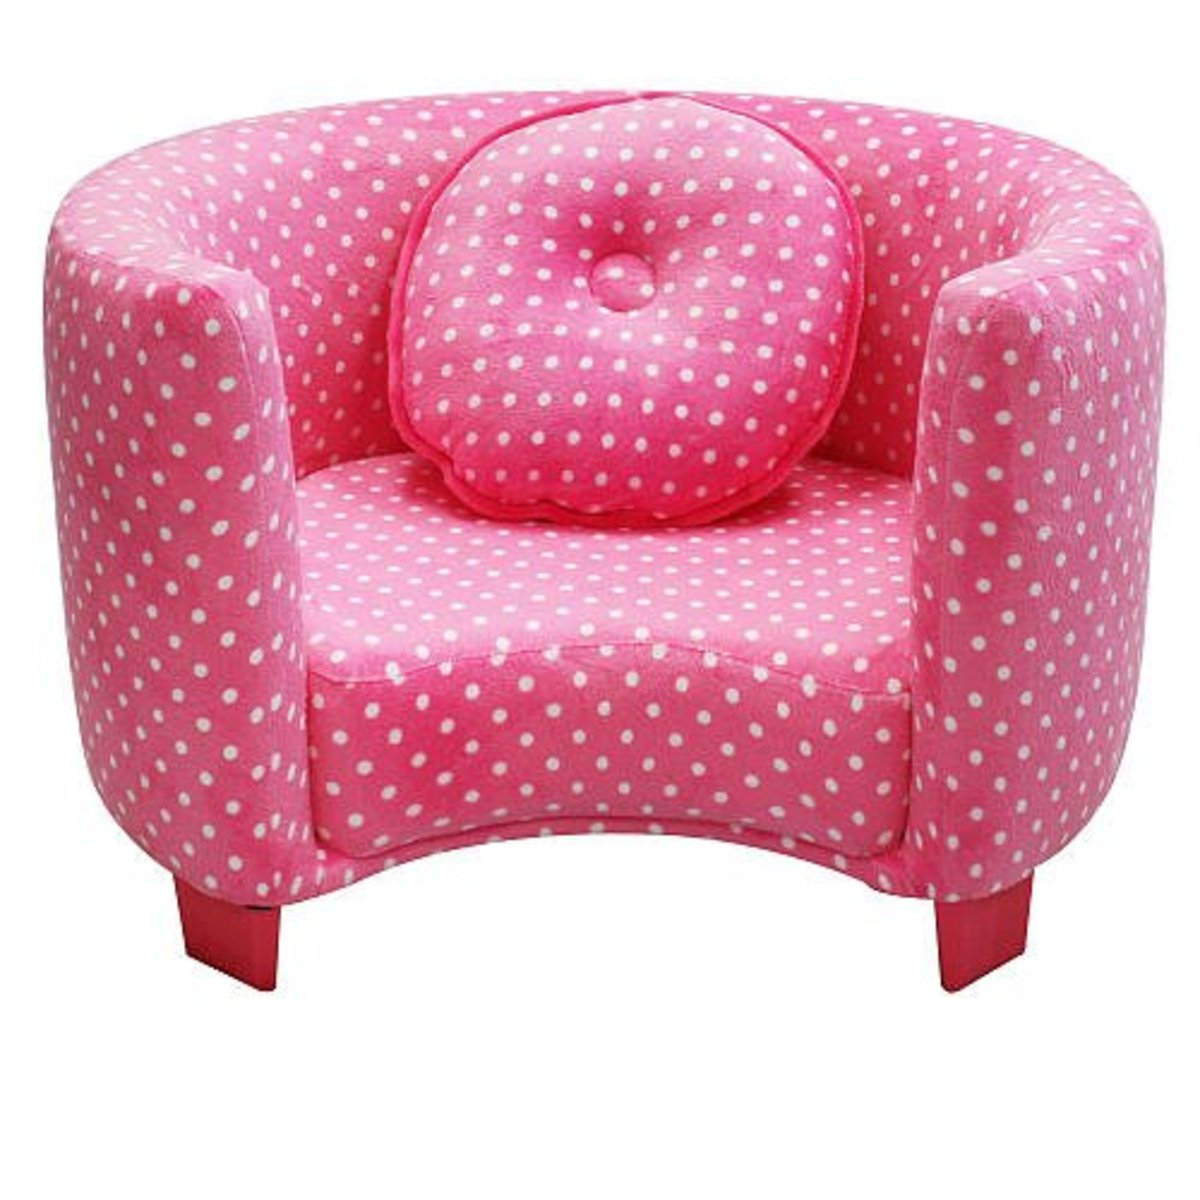 Upholstered Pink Chairs for Girls Rooms